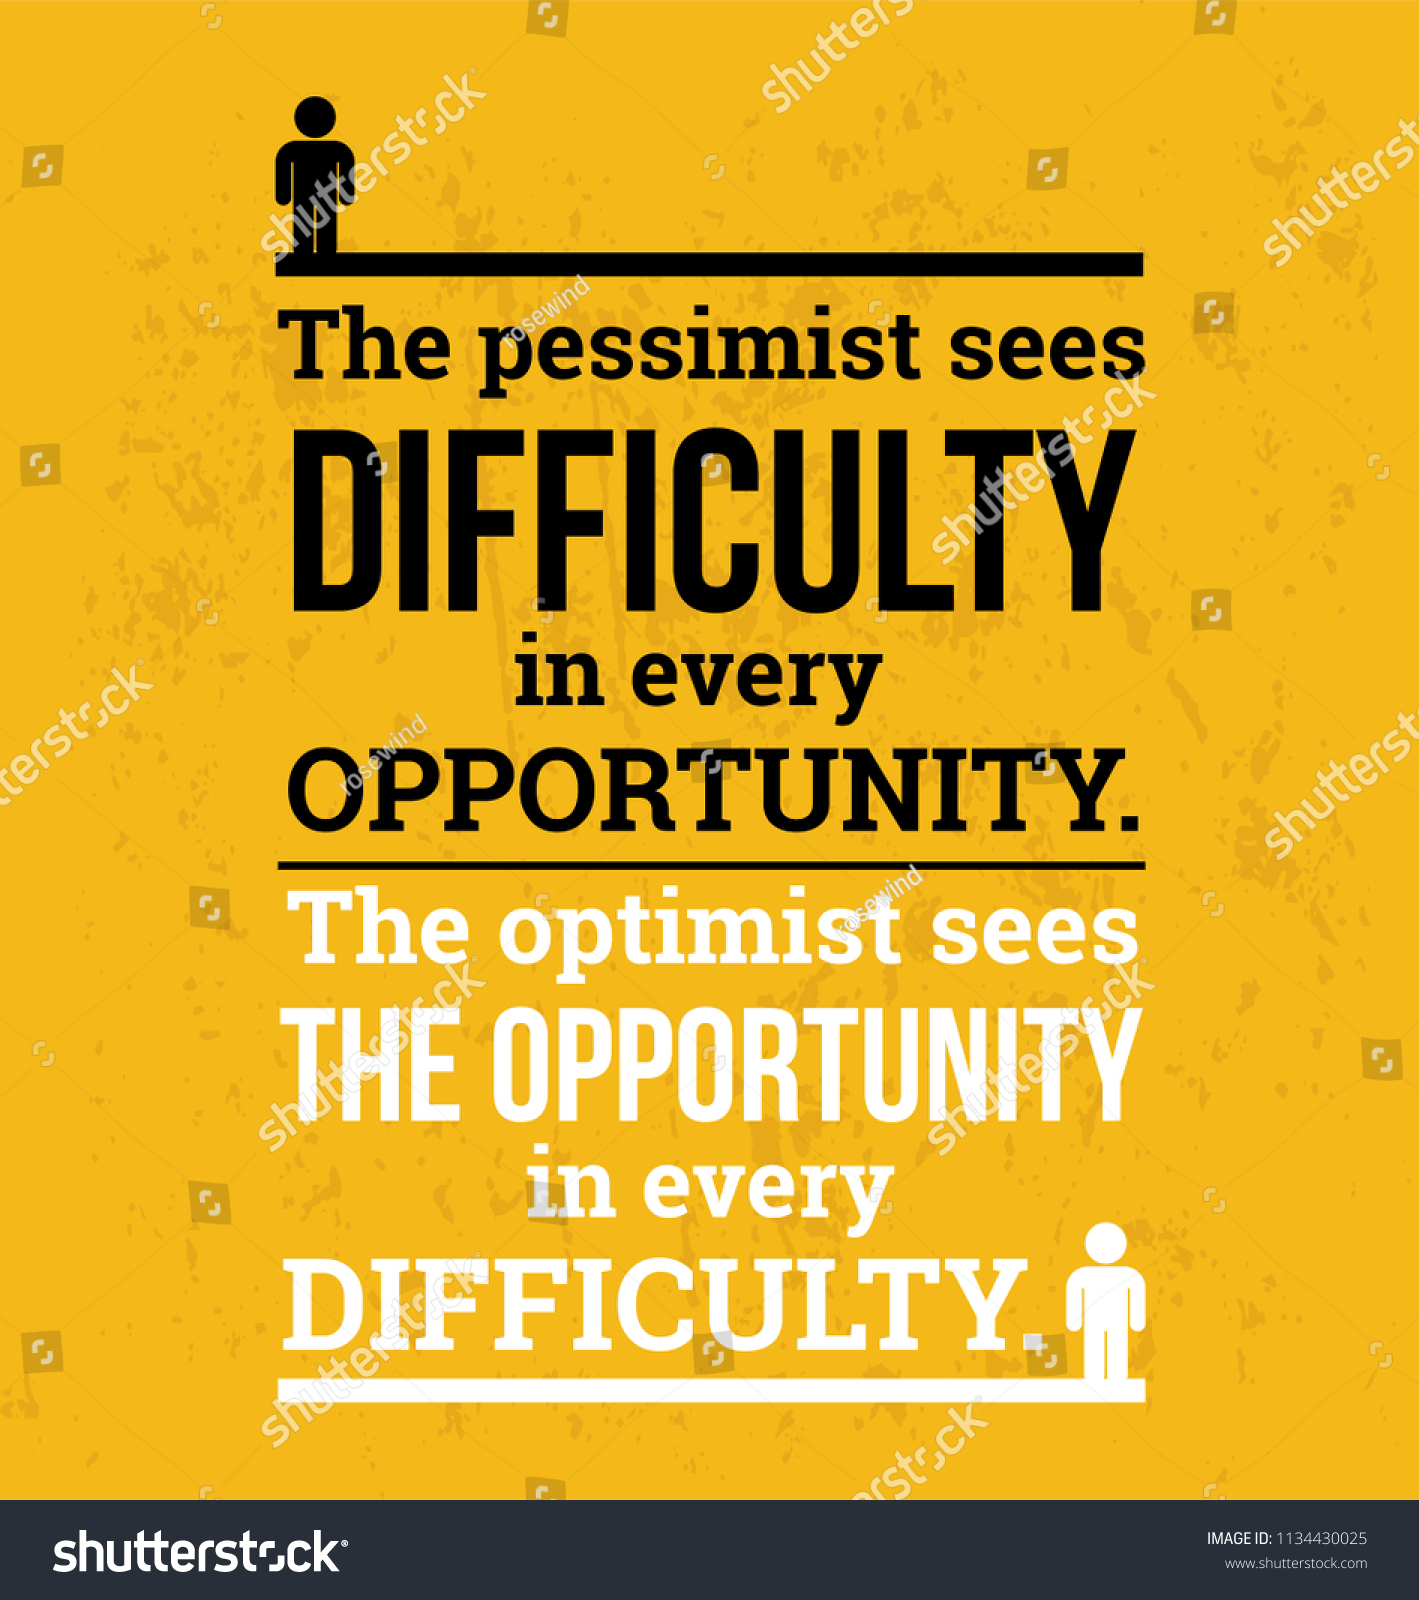 Quotes About Opportunity | Optimist Sees Opportunity Vector Motivational Quotes Stock Vector